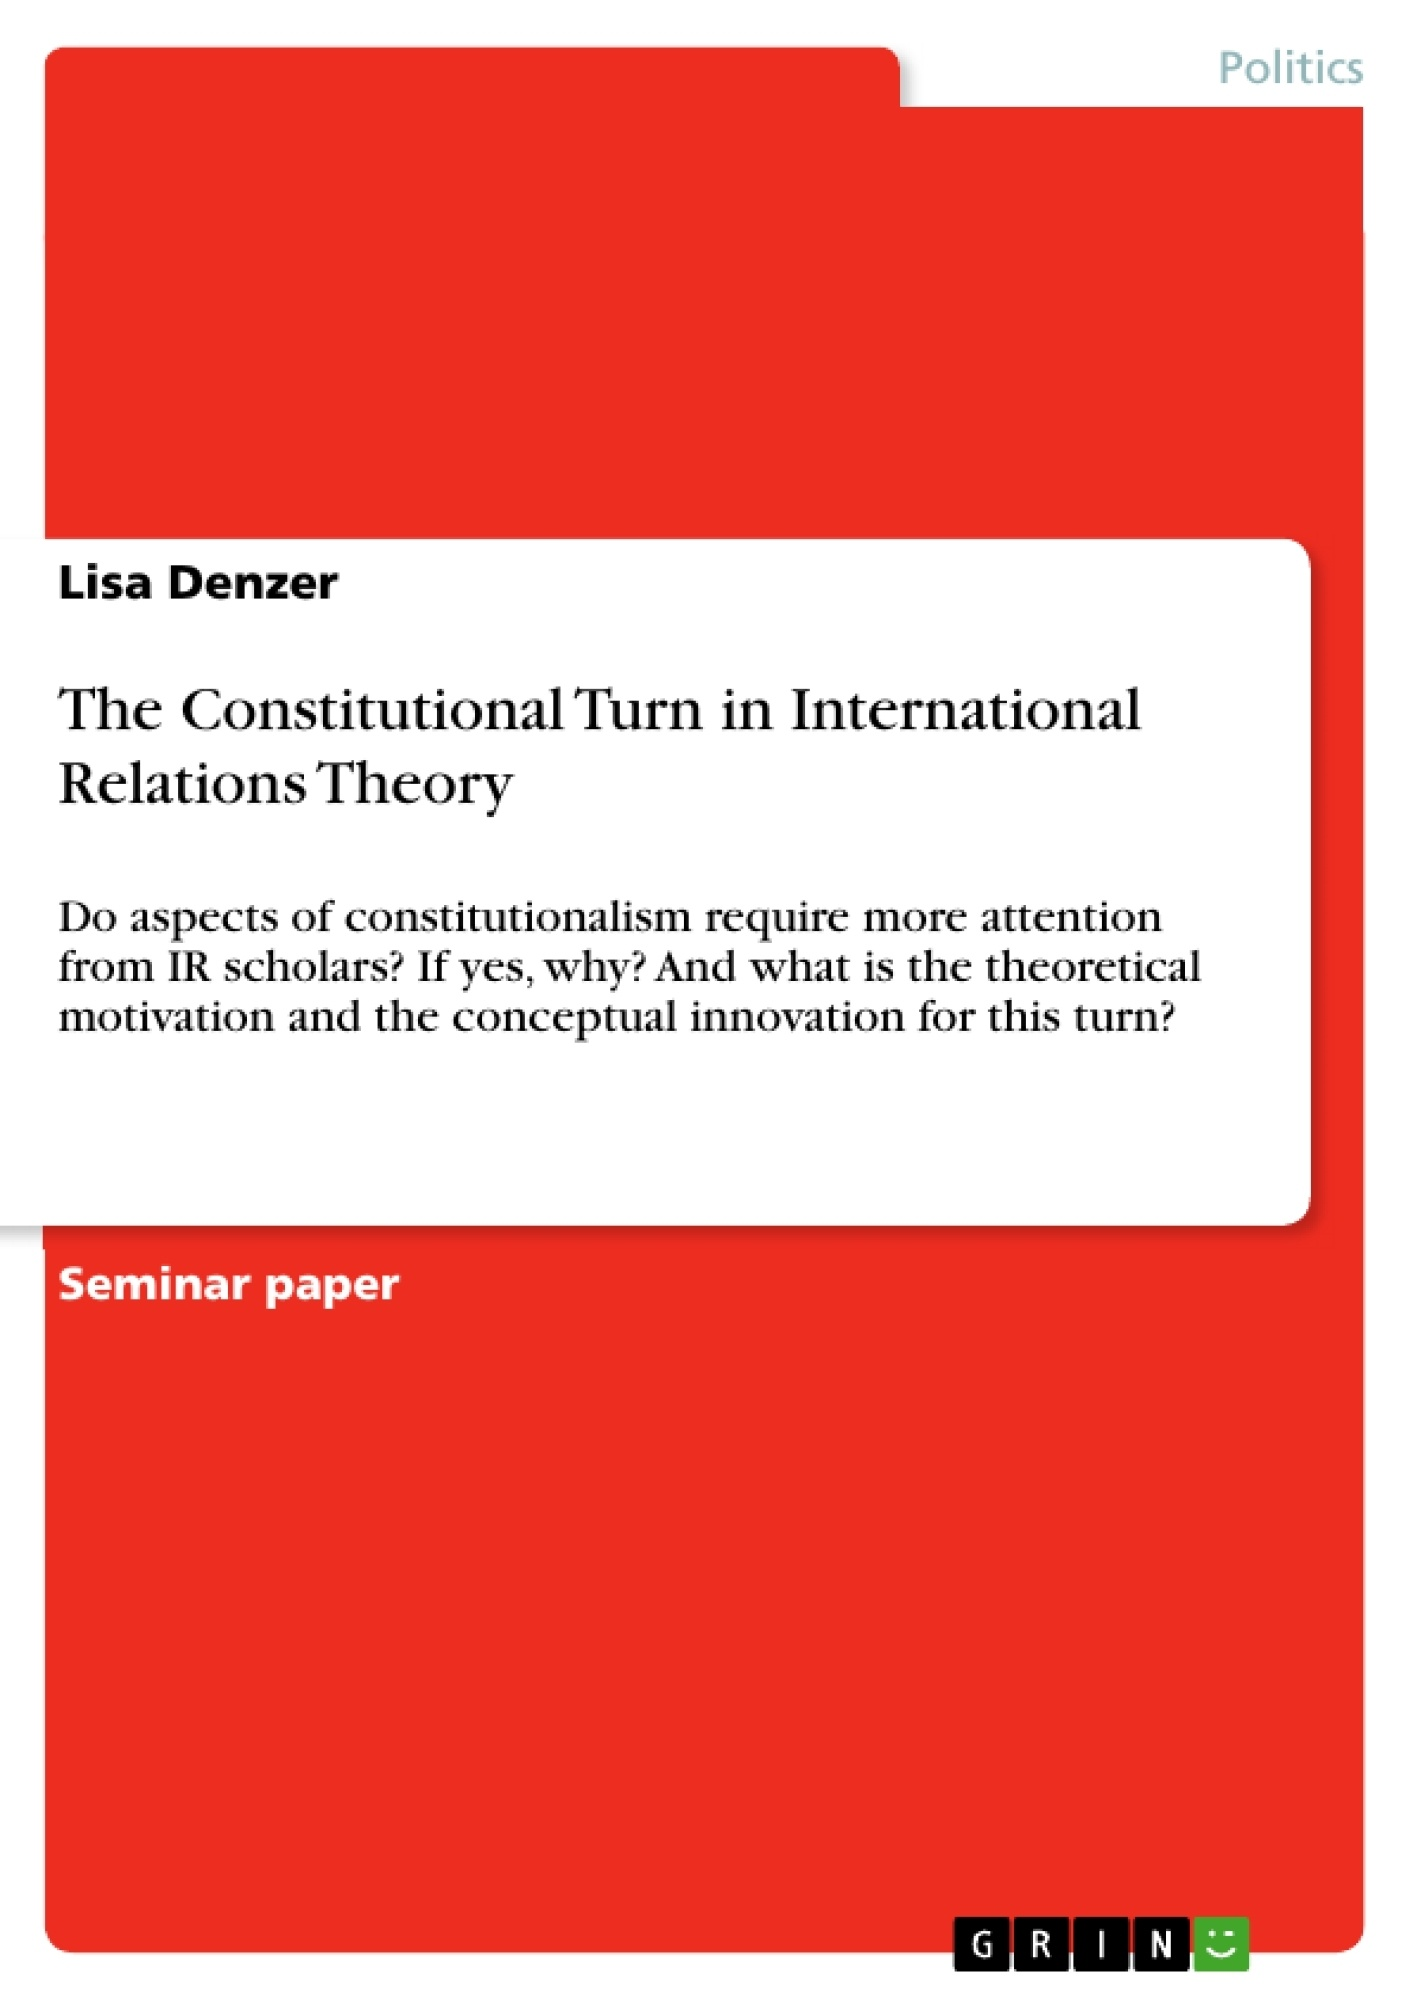 essay on international relations theories Denied: philosophy and international relations essay school the passion i feel for both international politics and philosophy must be fulfilled extracurricularly, usually through personal reading.